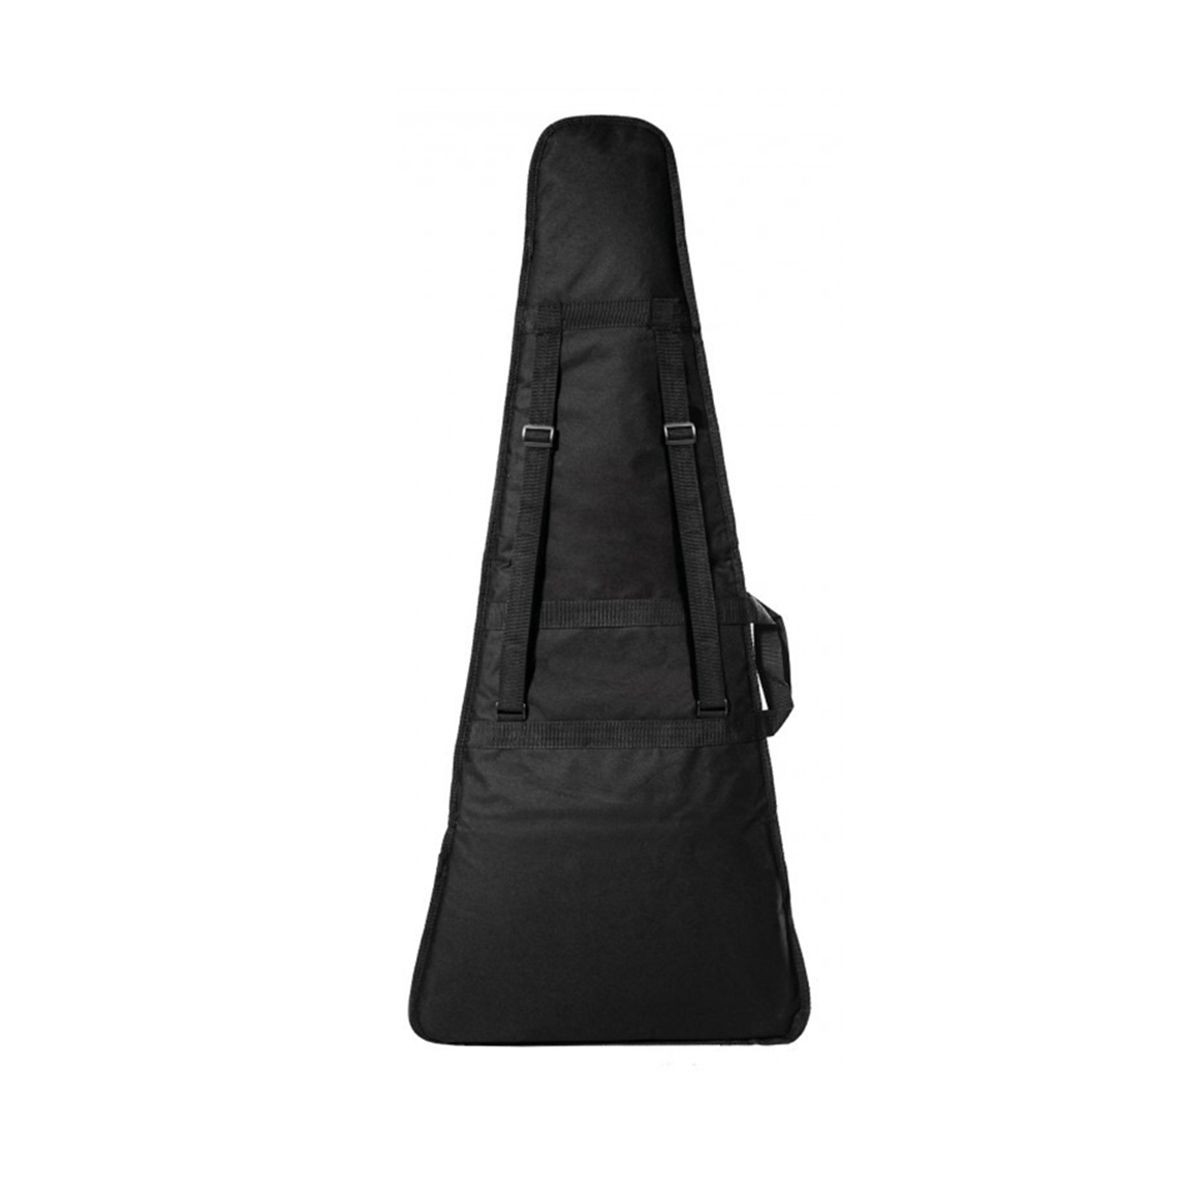 Bag AVS BIC012FV Super Luxo Preto para Guitarra Flying V